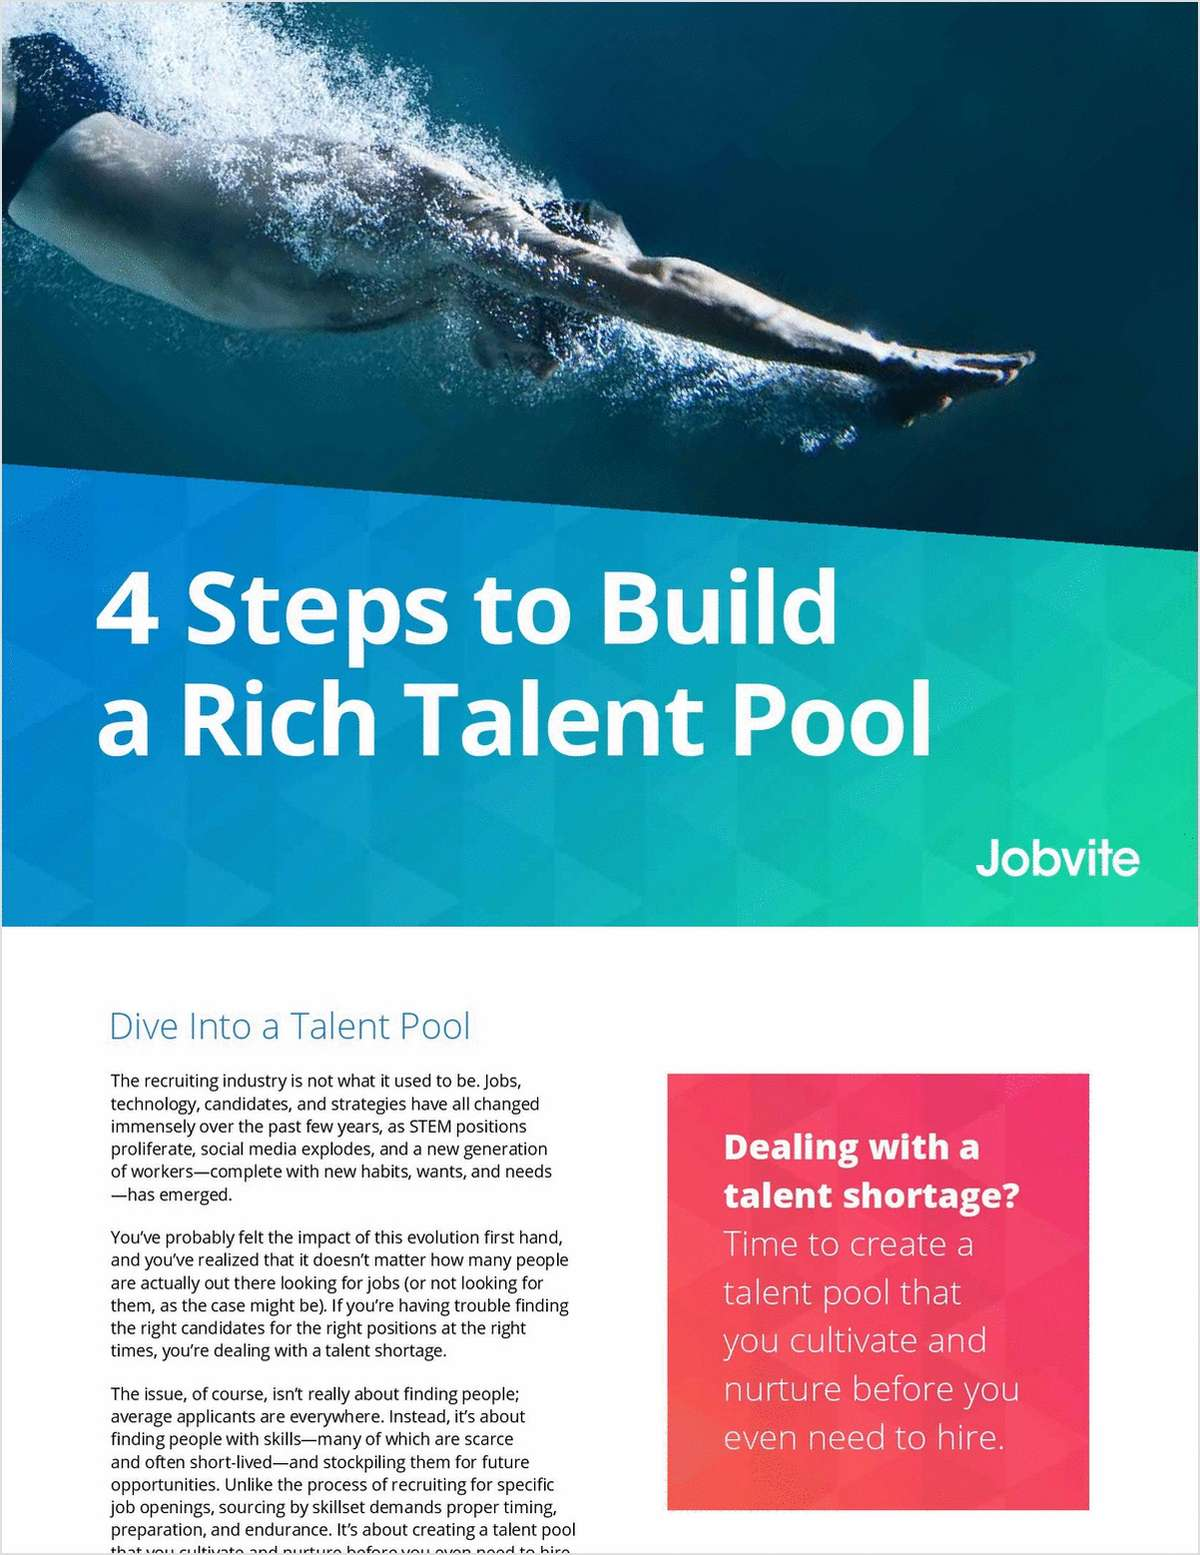 4 Steps to Build a Rich Talent Pool